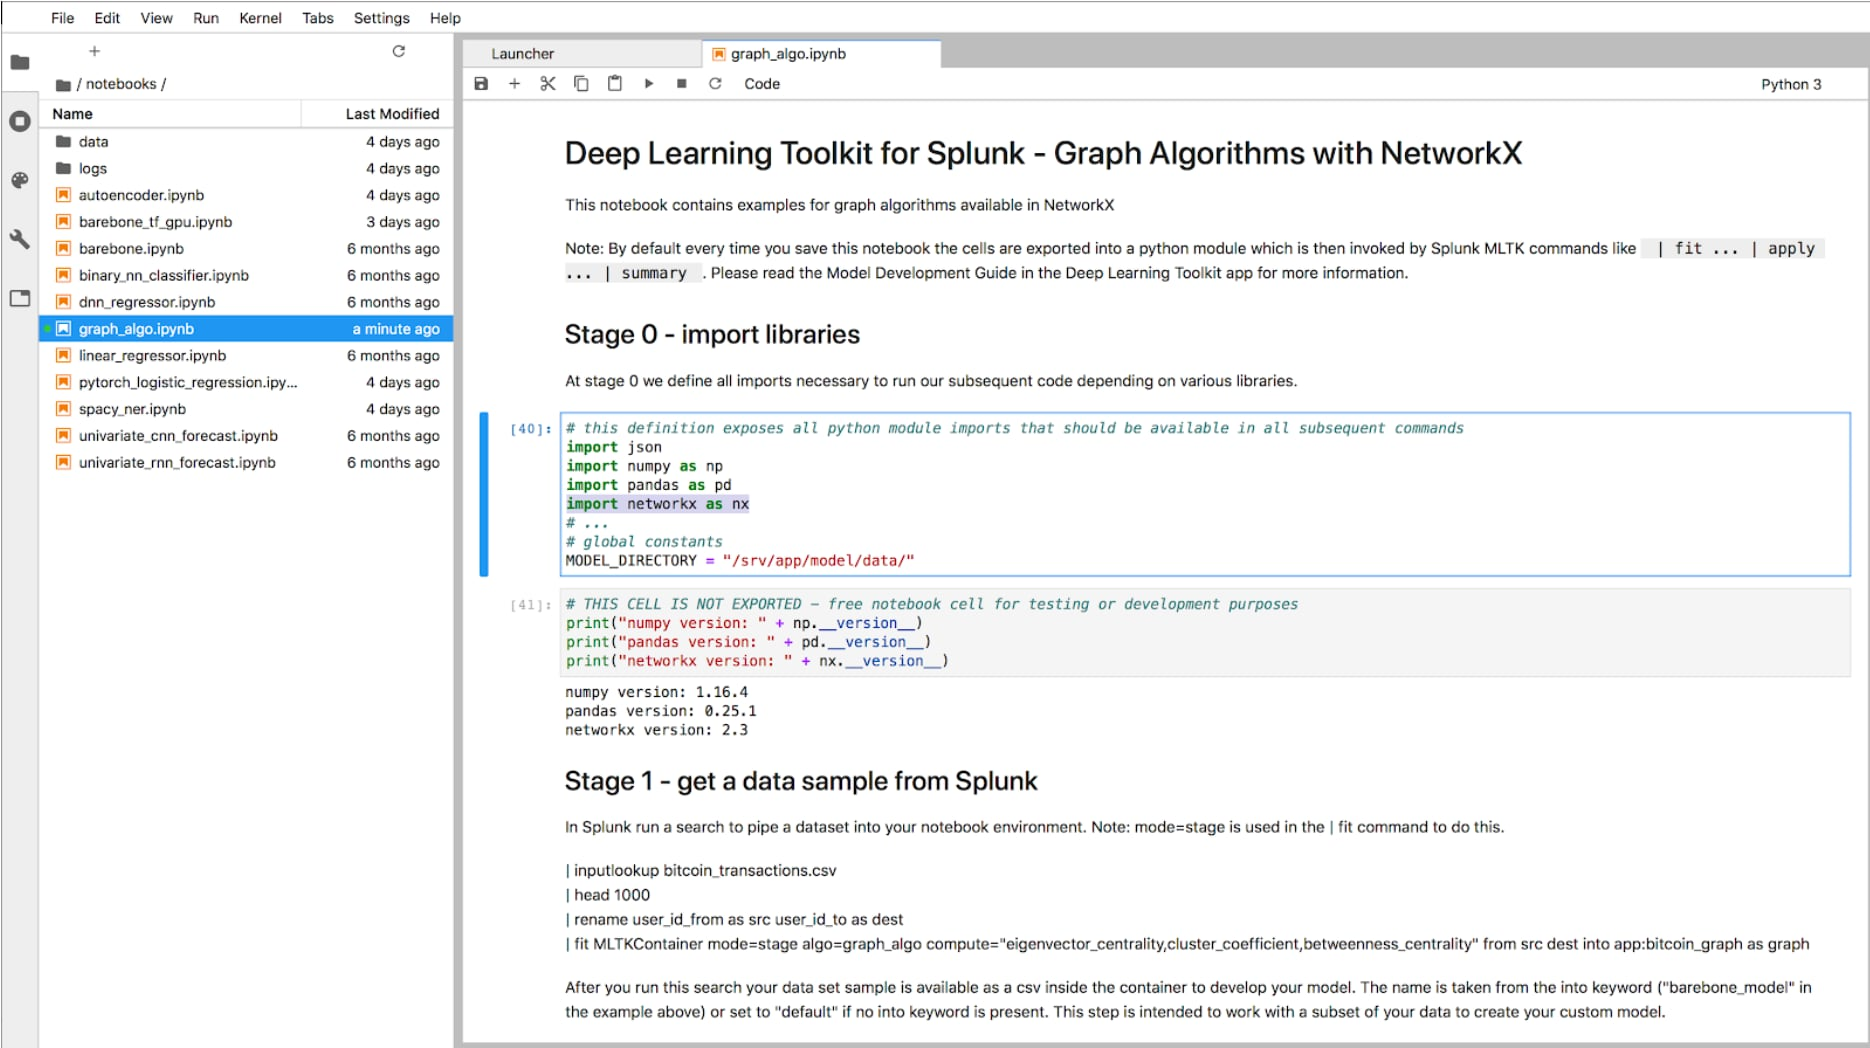 Deep Learning Toolkit for Splunk